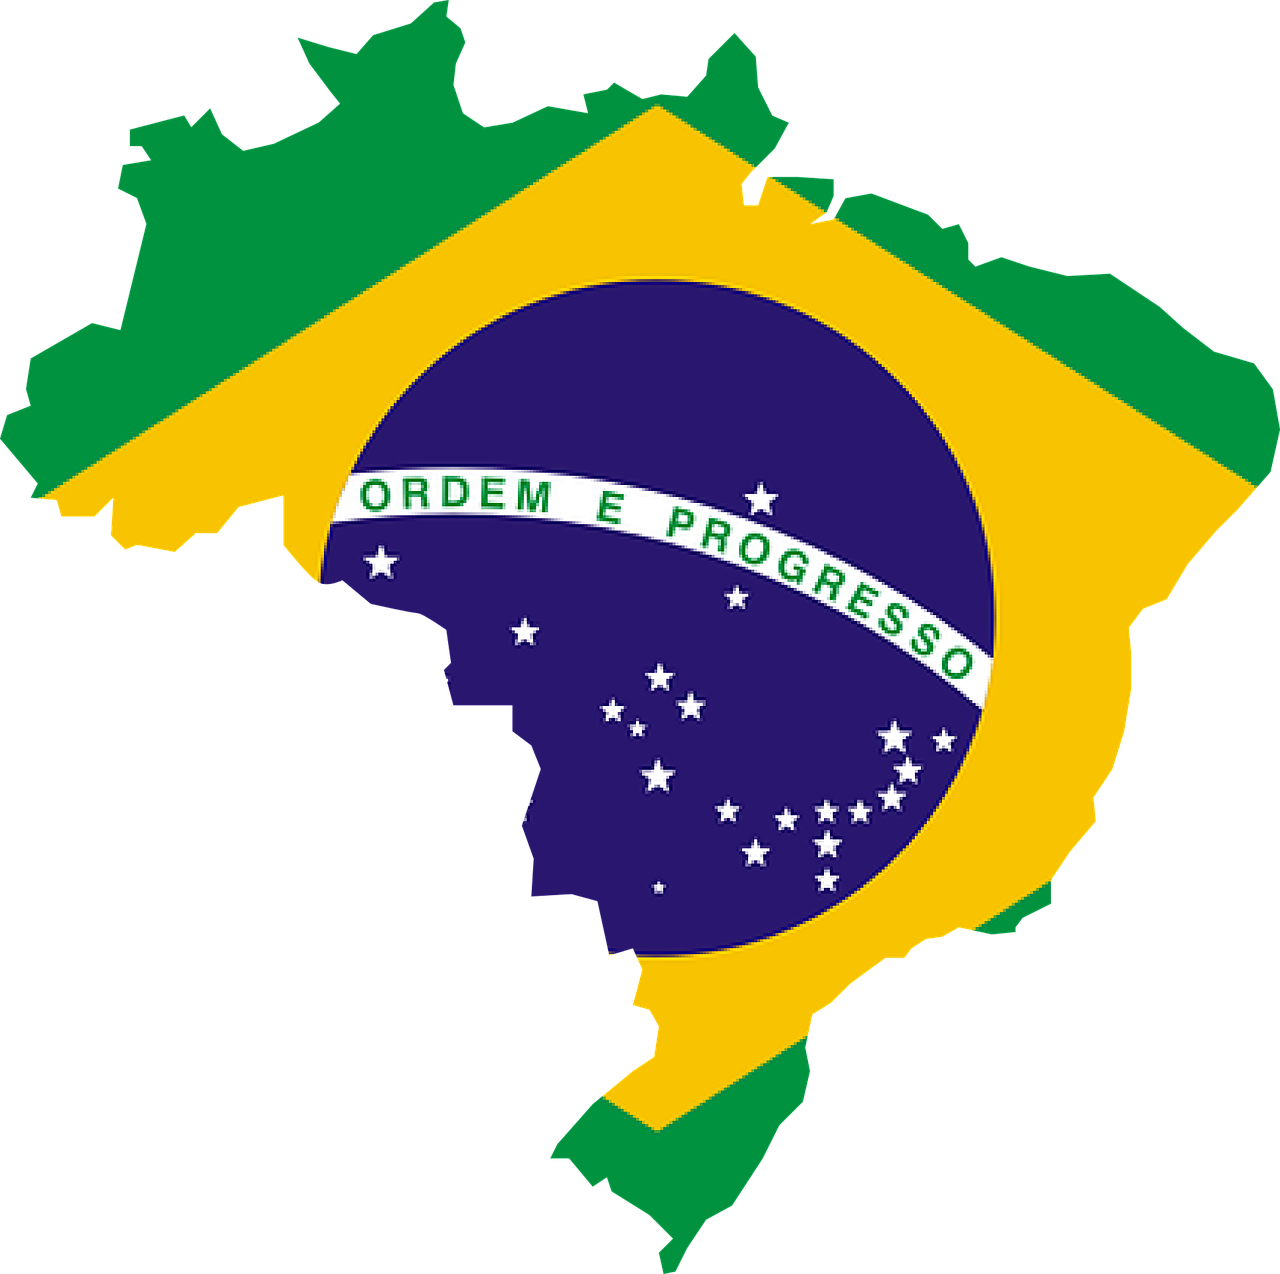 Brazil by total area